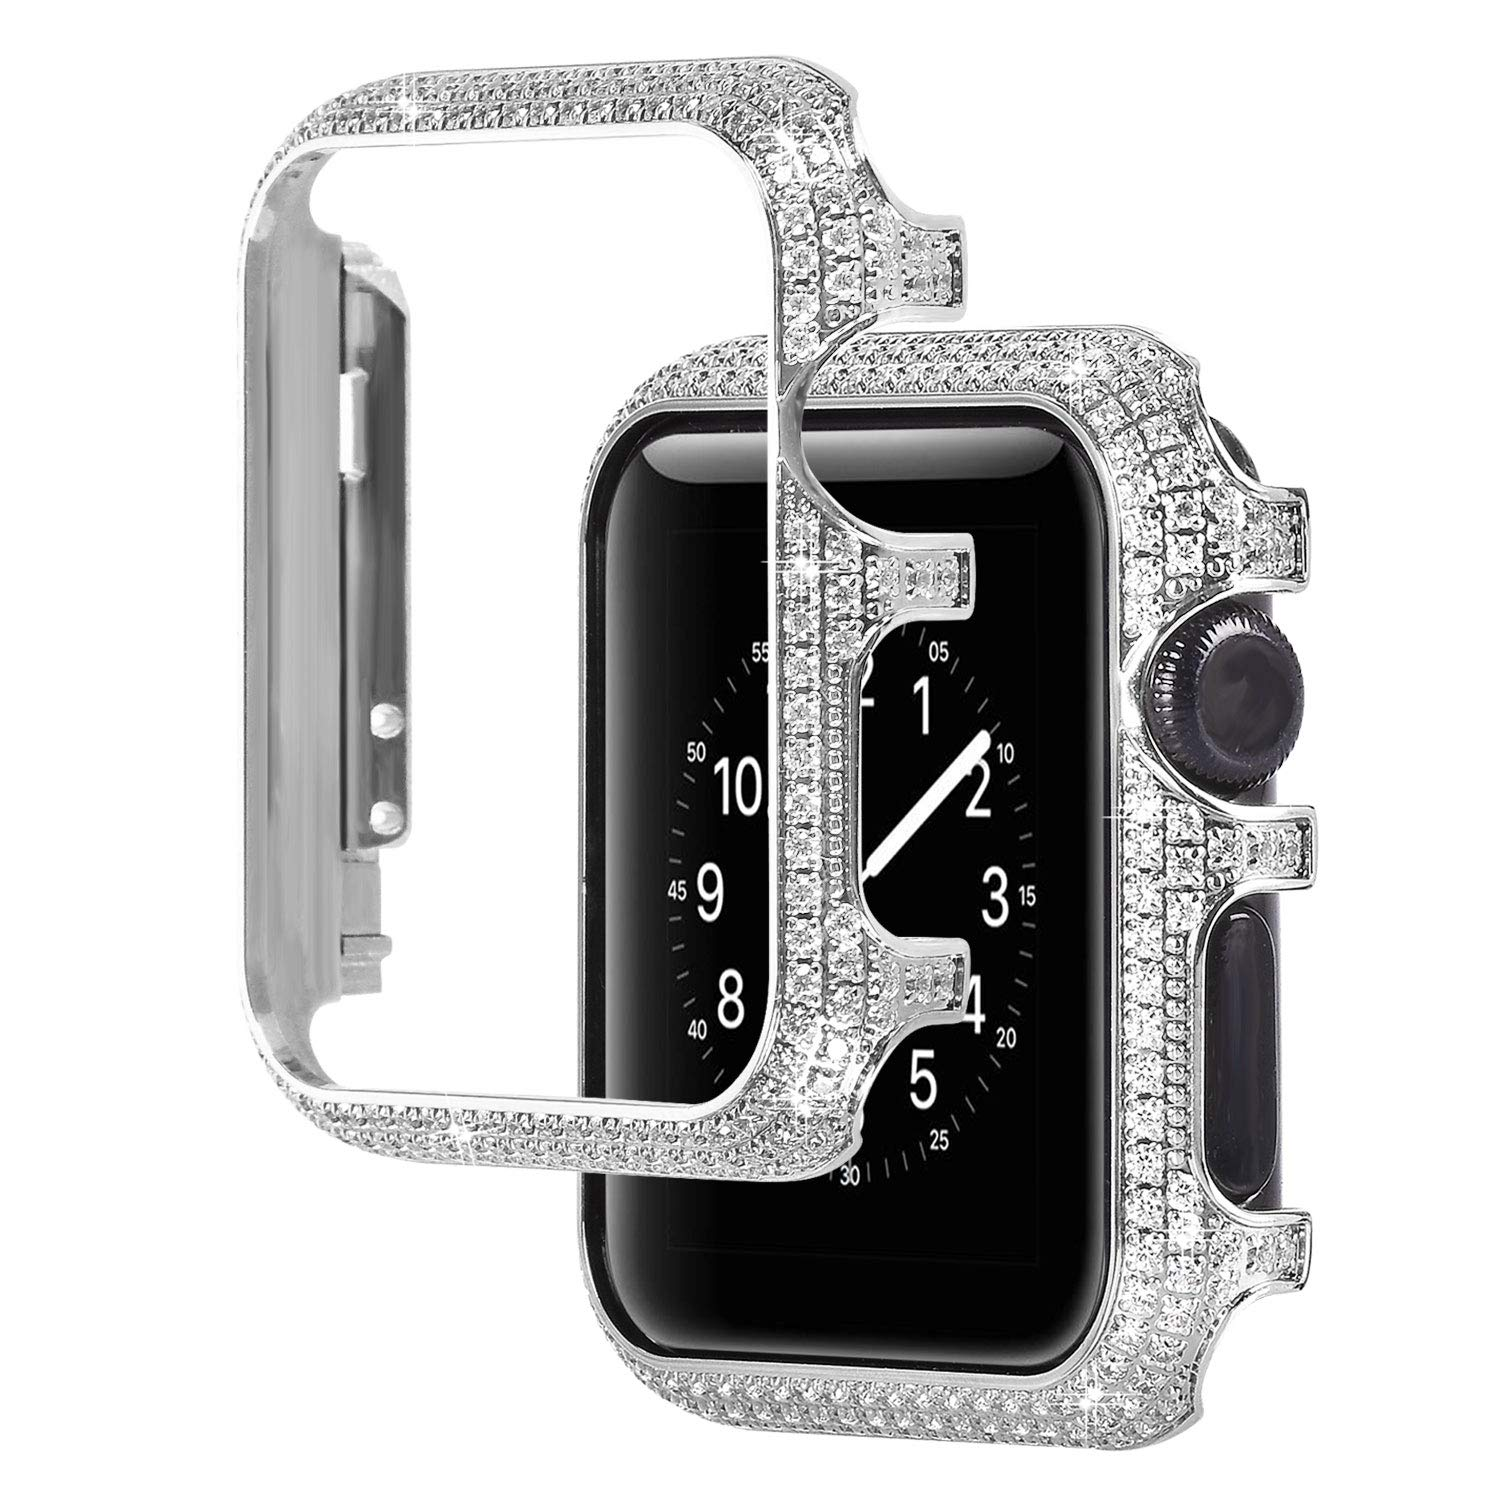 For Apple Watch 38mm, LolStore Sparkle Rhinestone Glitter Diamond Aluminum iWatch Face Cover Metal Protective Frame Case Protector Bumper for iWatch Series 1/2/3 - Silver